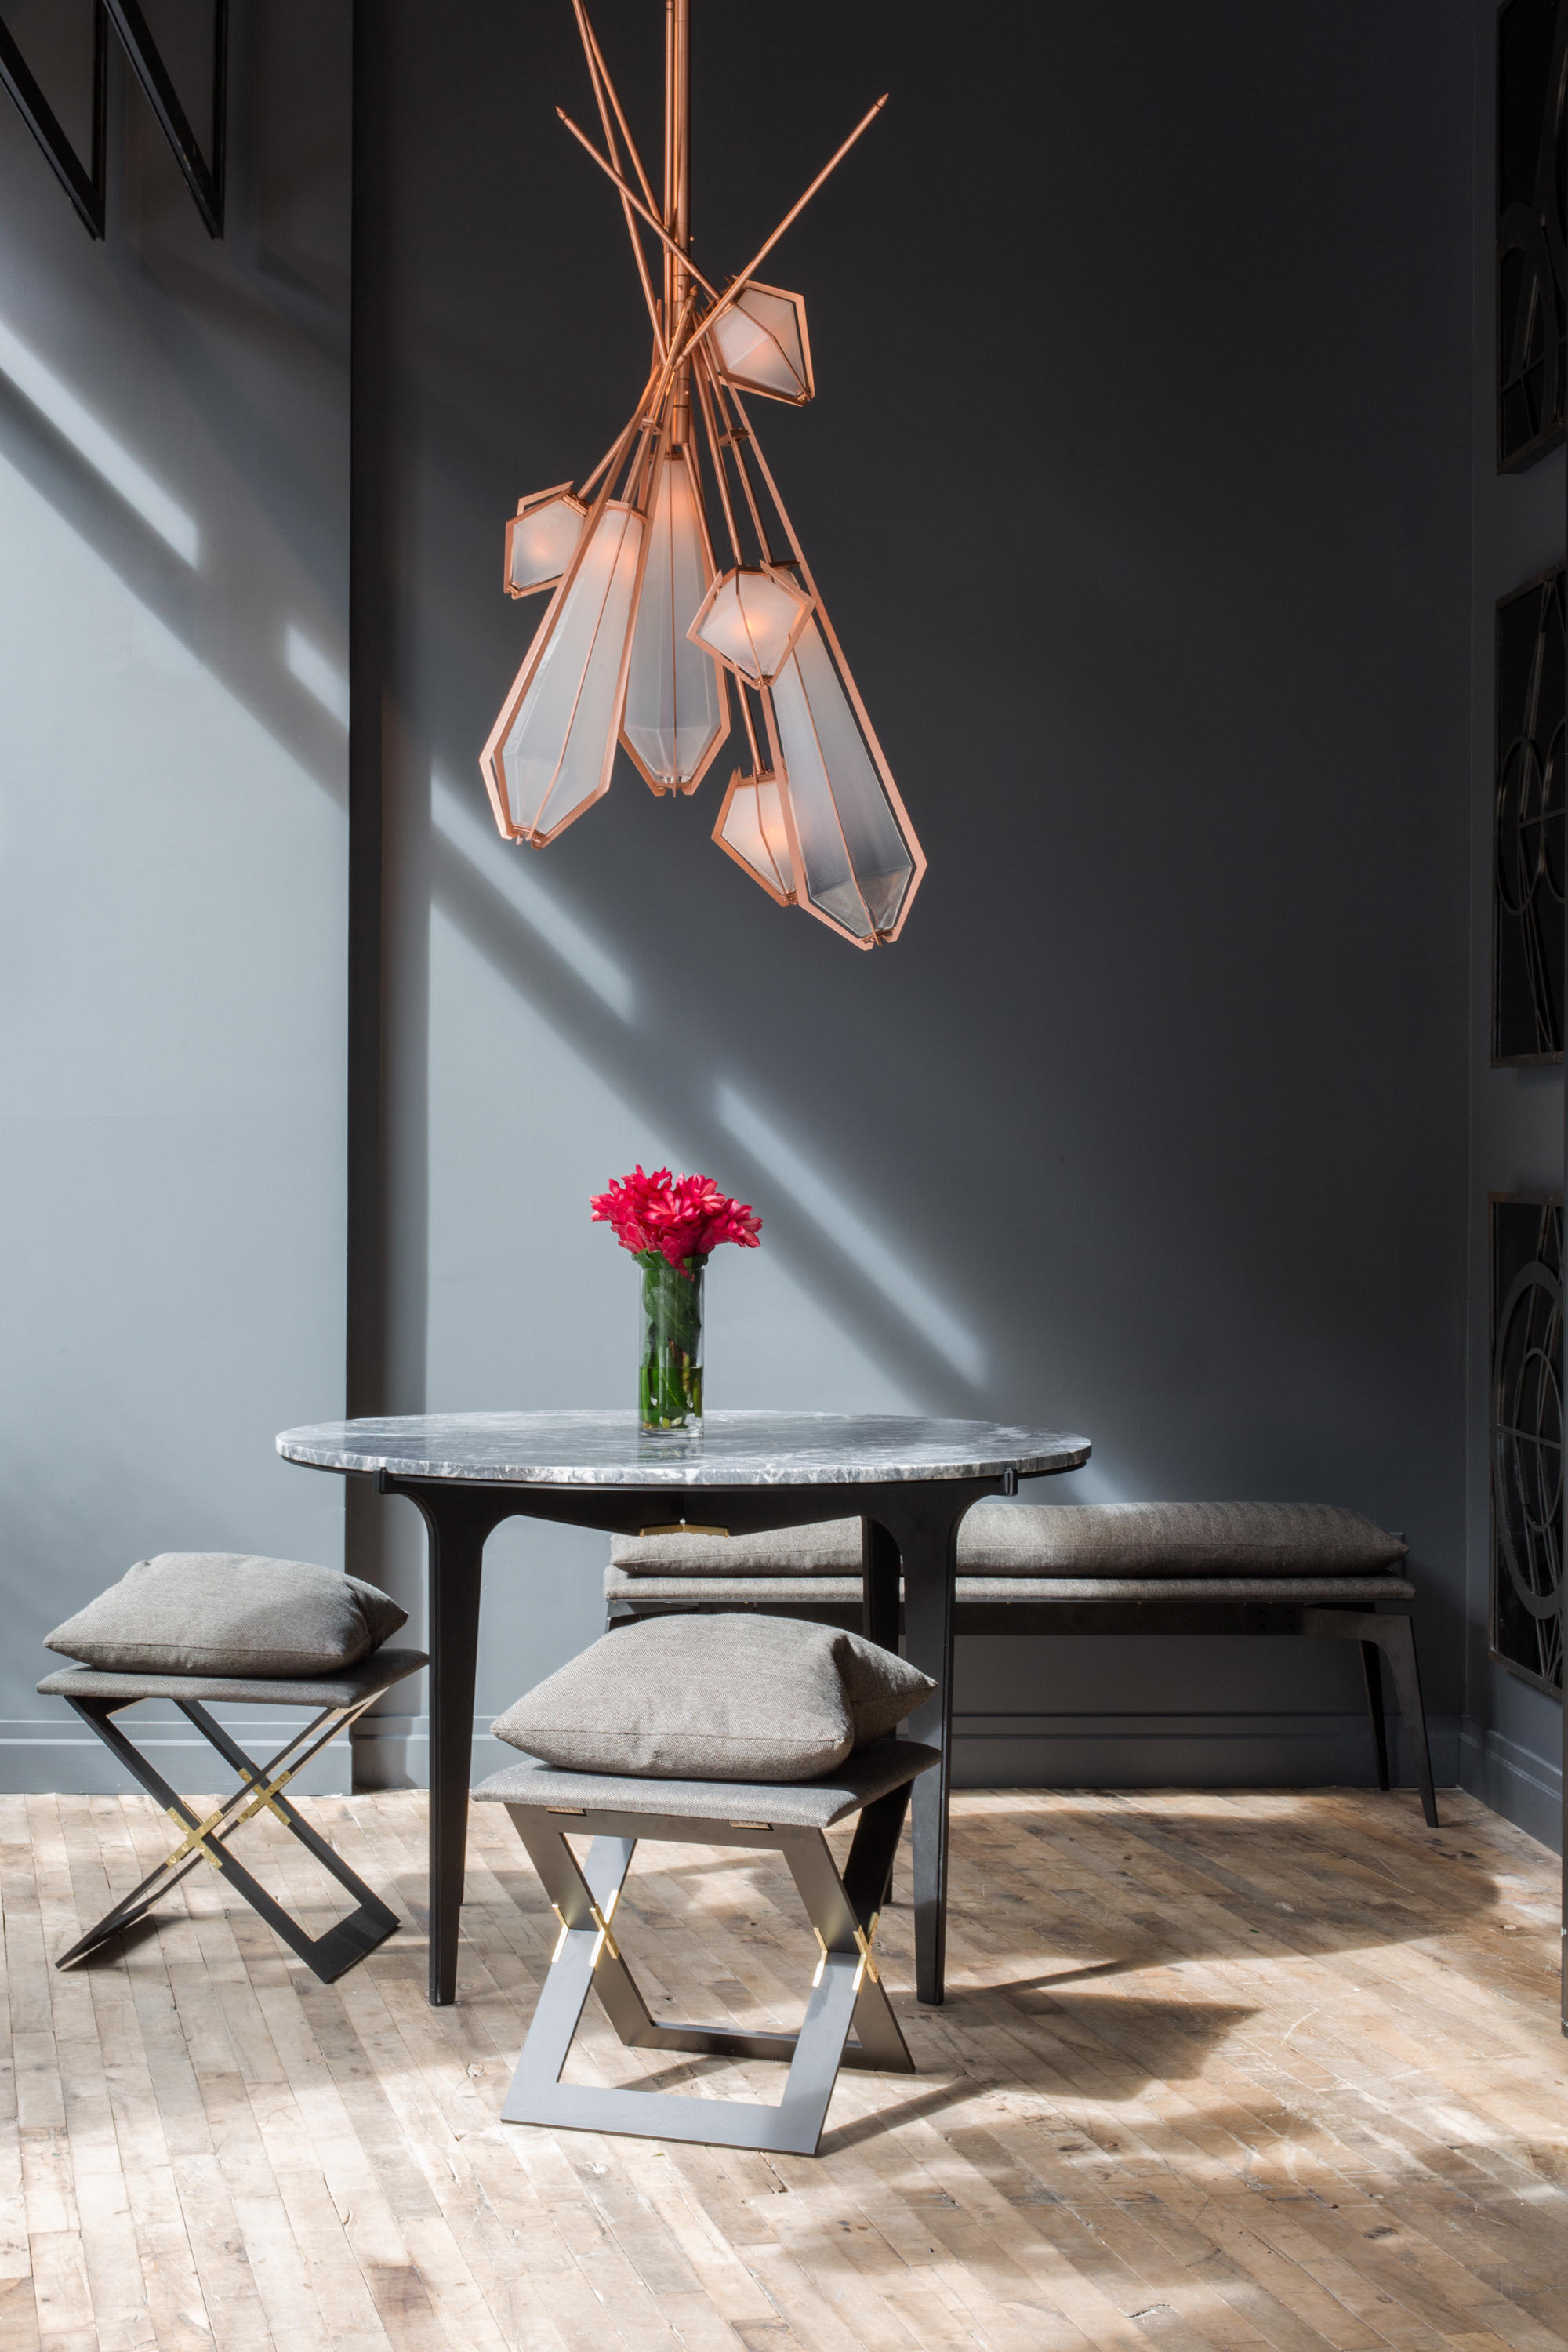 Harlow Spoke Chandelier Suspended Lights From Gabriel